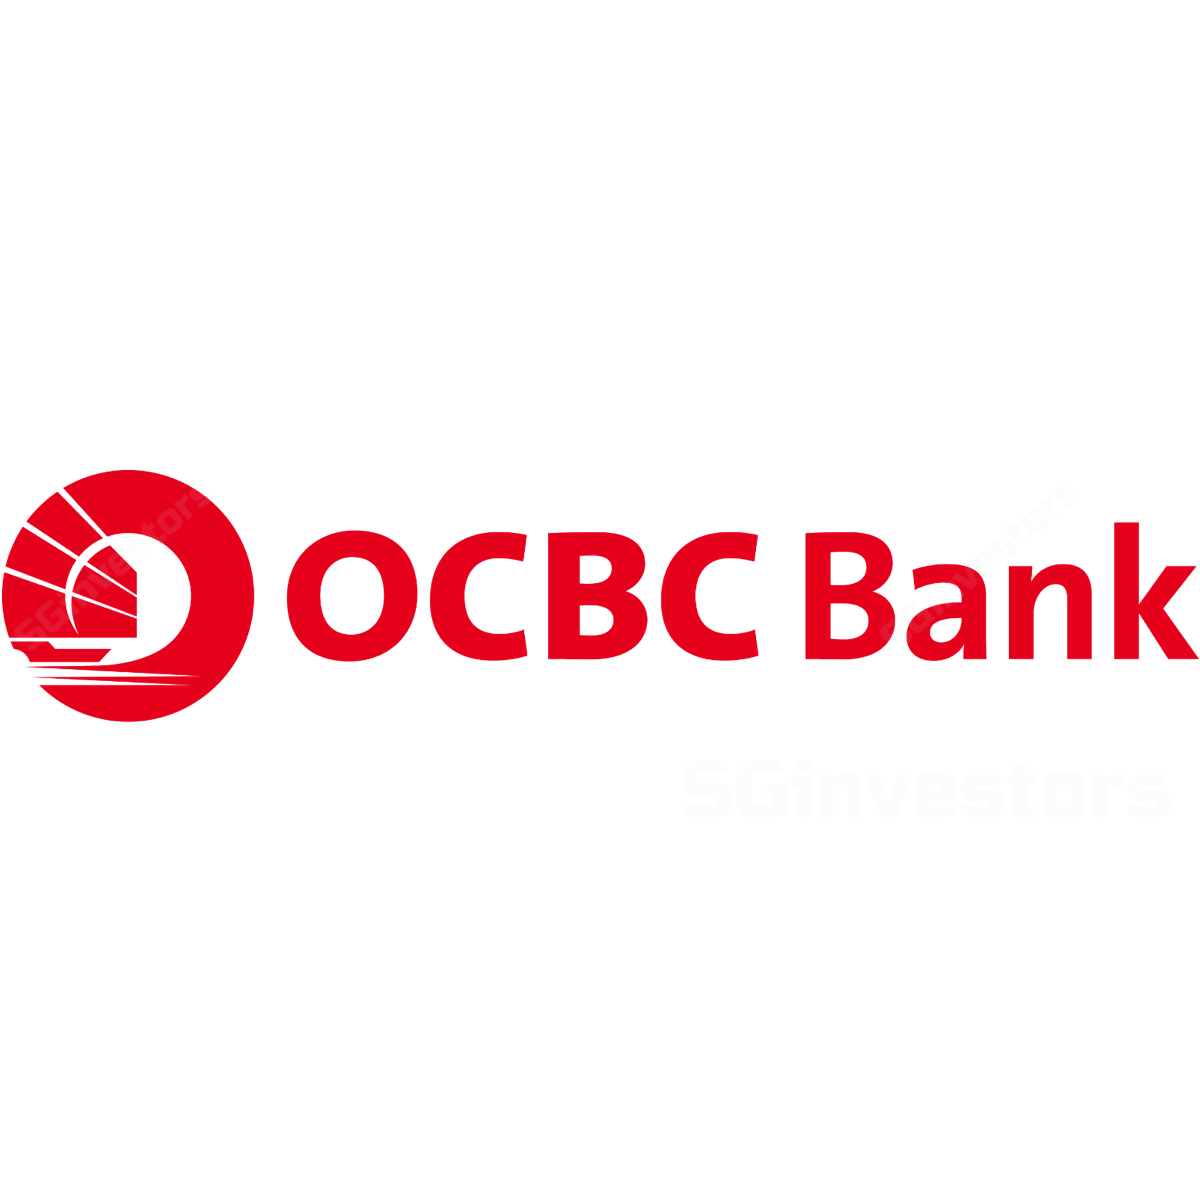 OCBC - DBS Vickers 2017-05-09: Strong Non-Interest Income Drivers